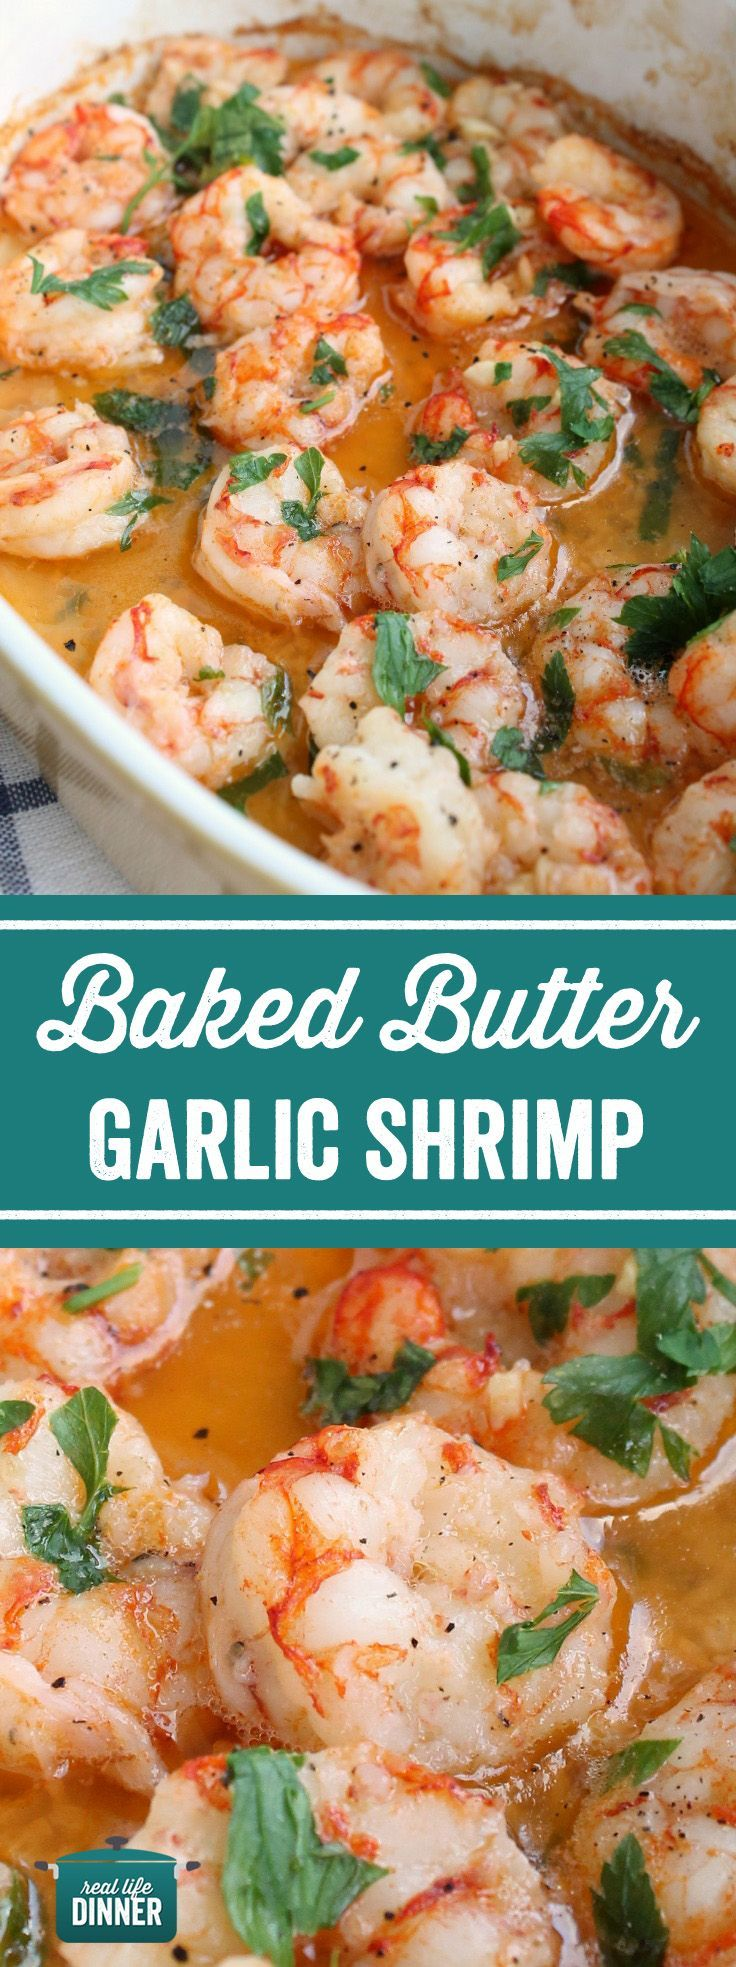 1690 best Seafood recipes images on Pinterest | Seafood, Fish and ...